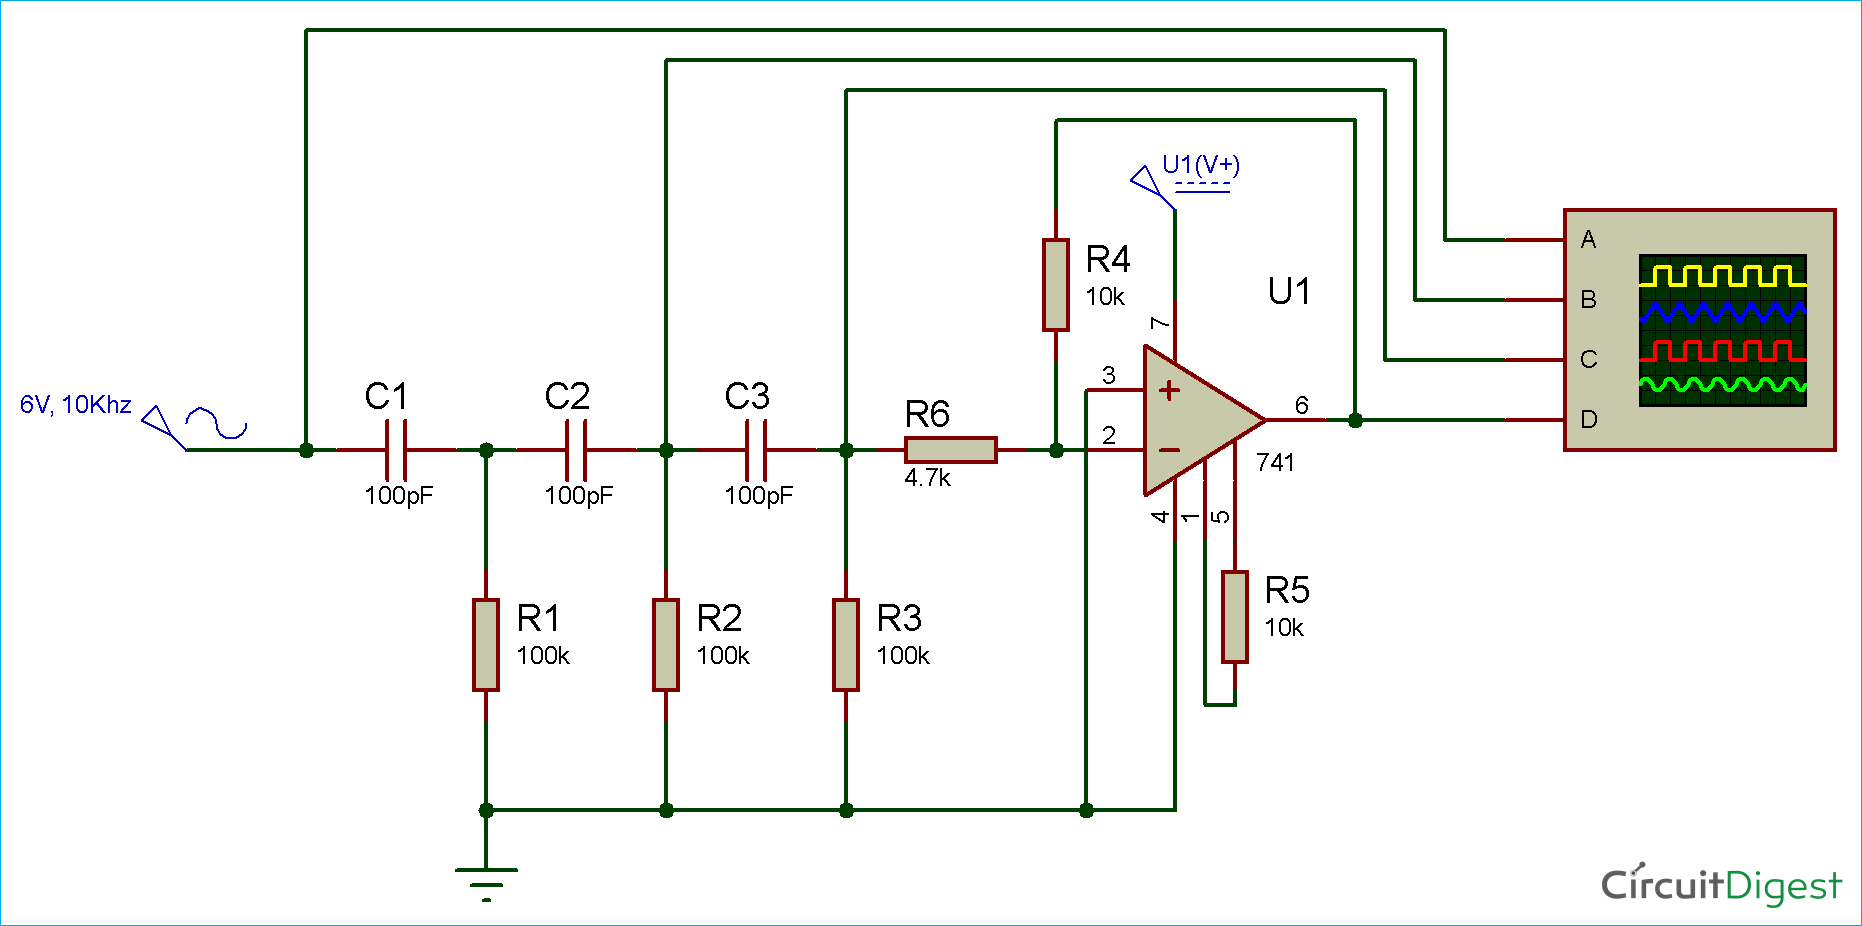 hight resolution of circuit diagram for rc phase shift oscillator using op amp